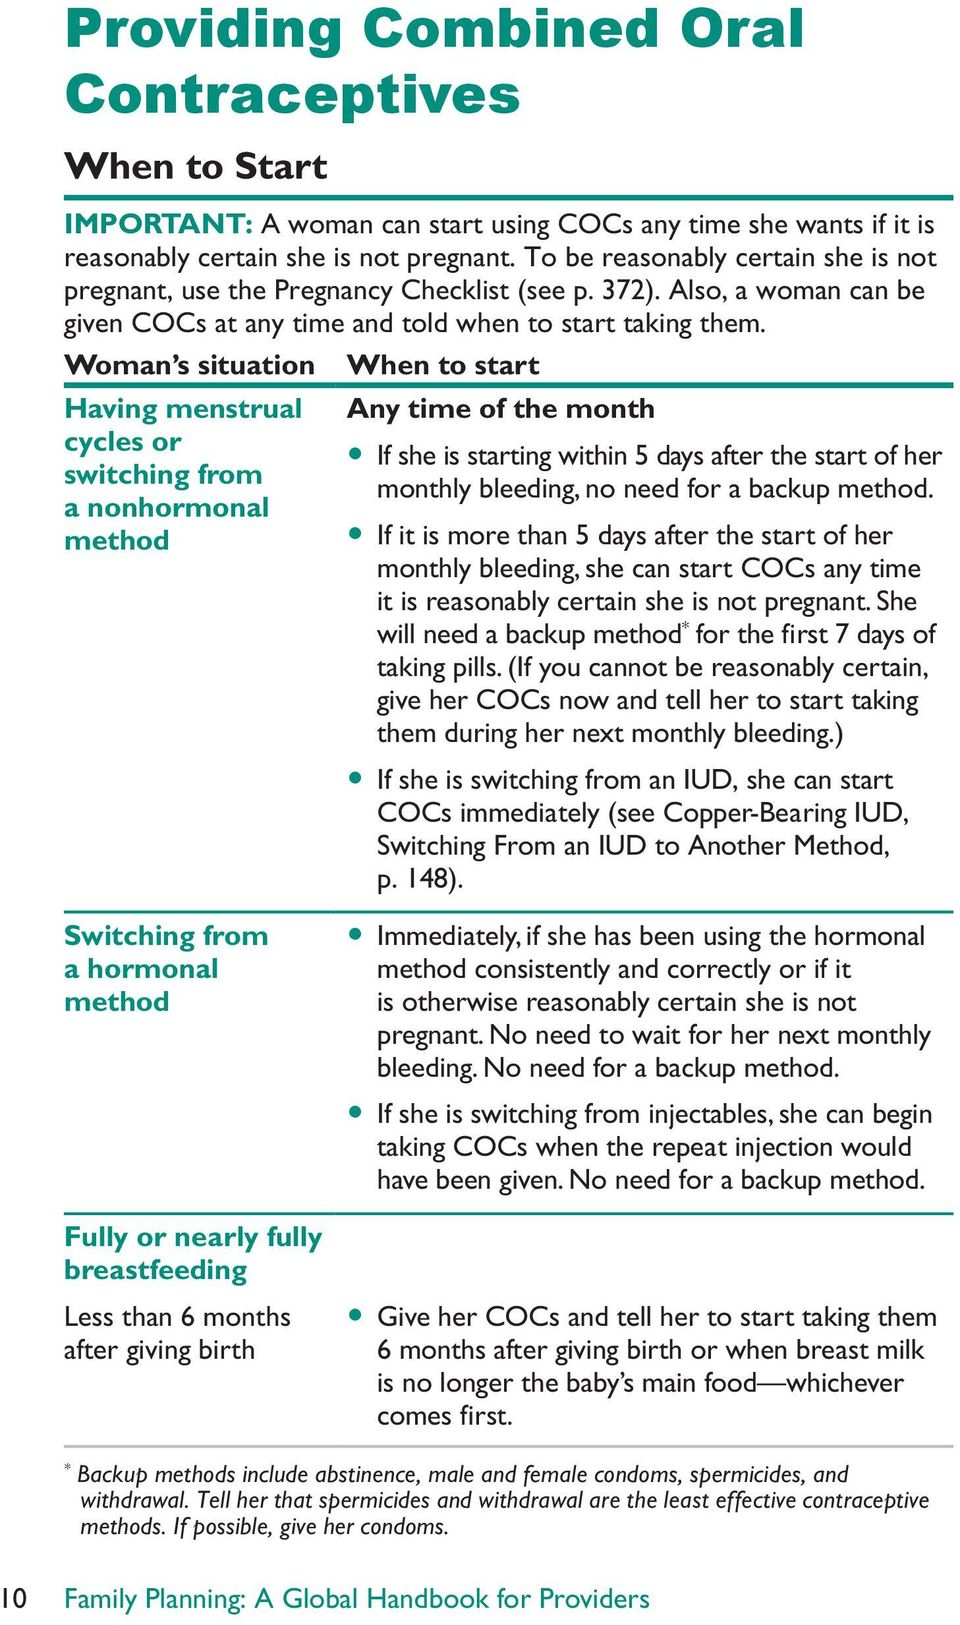 Woman s situation Having menstrual cycles or switching from a nonhormonal method When to start Any time of the month y If she is starting within 5 days after the start of her monthly bleeding, no